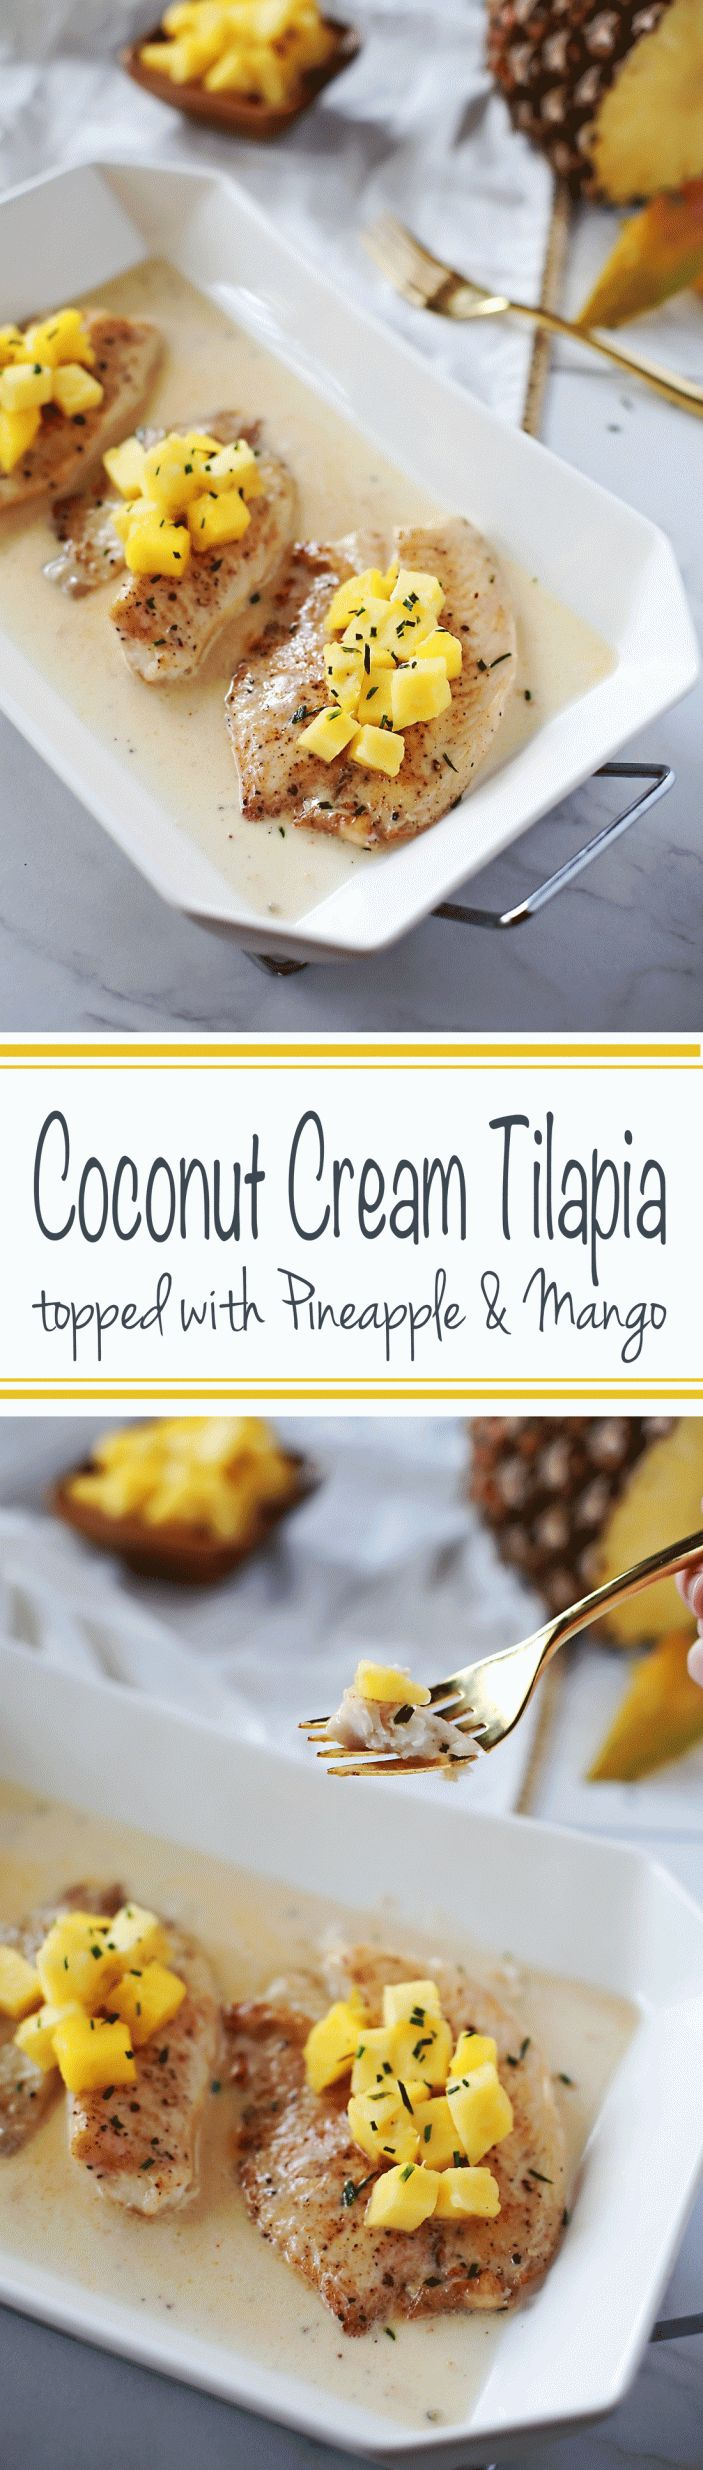 how to cook tilapia breaded